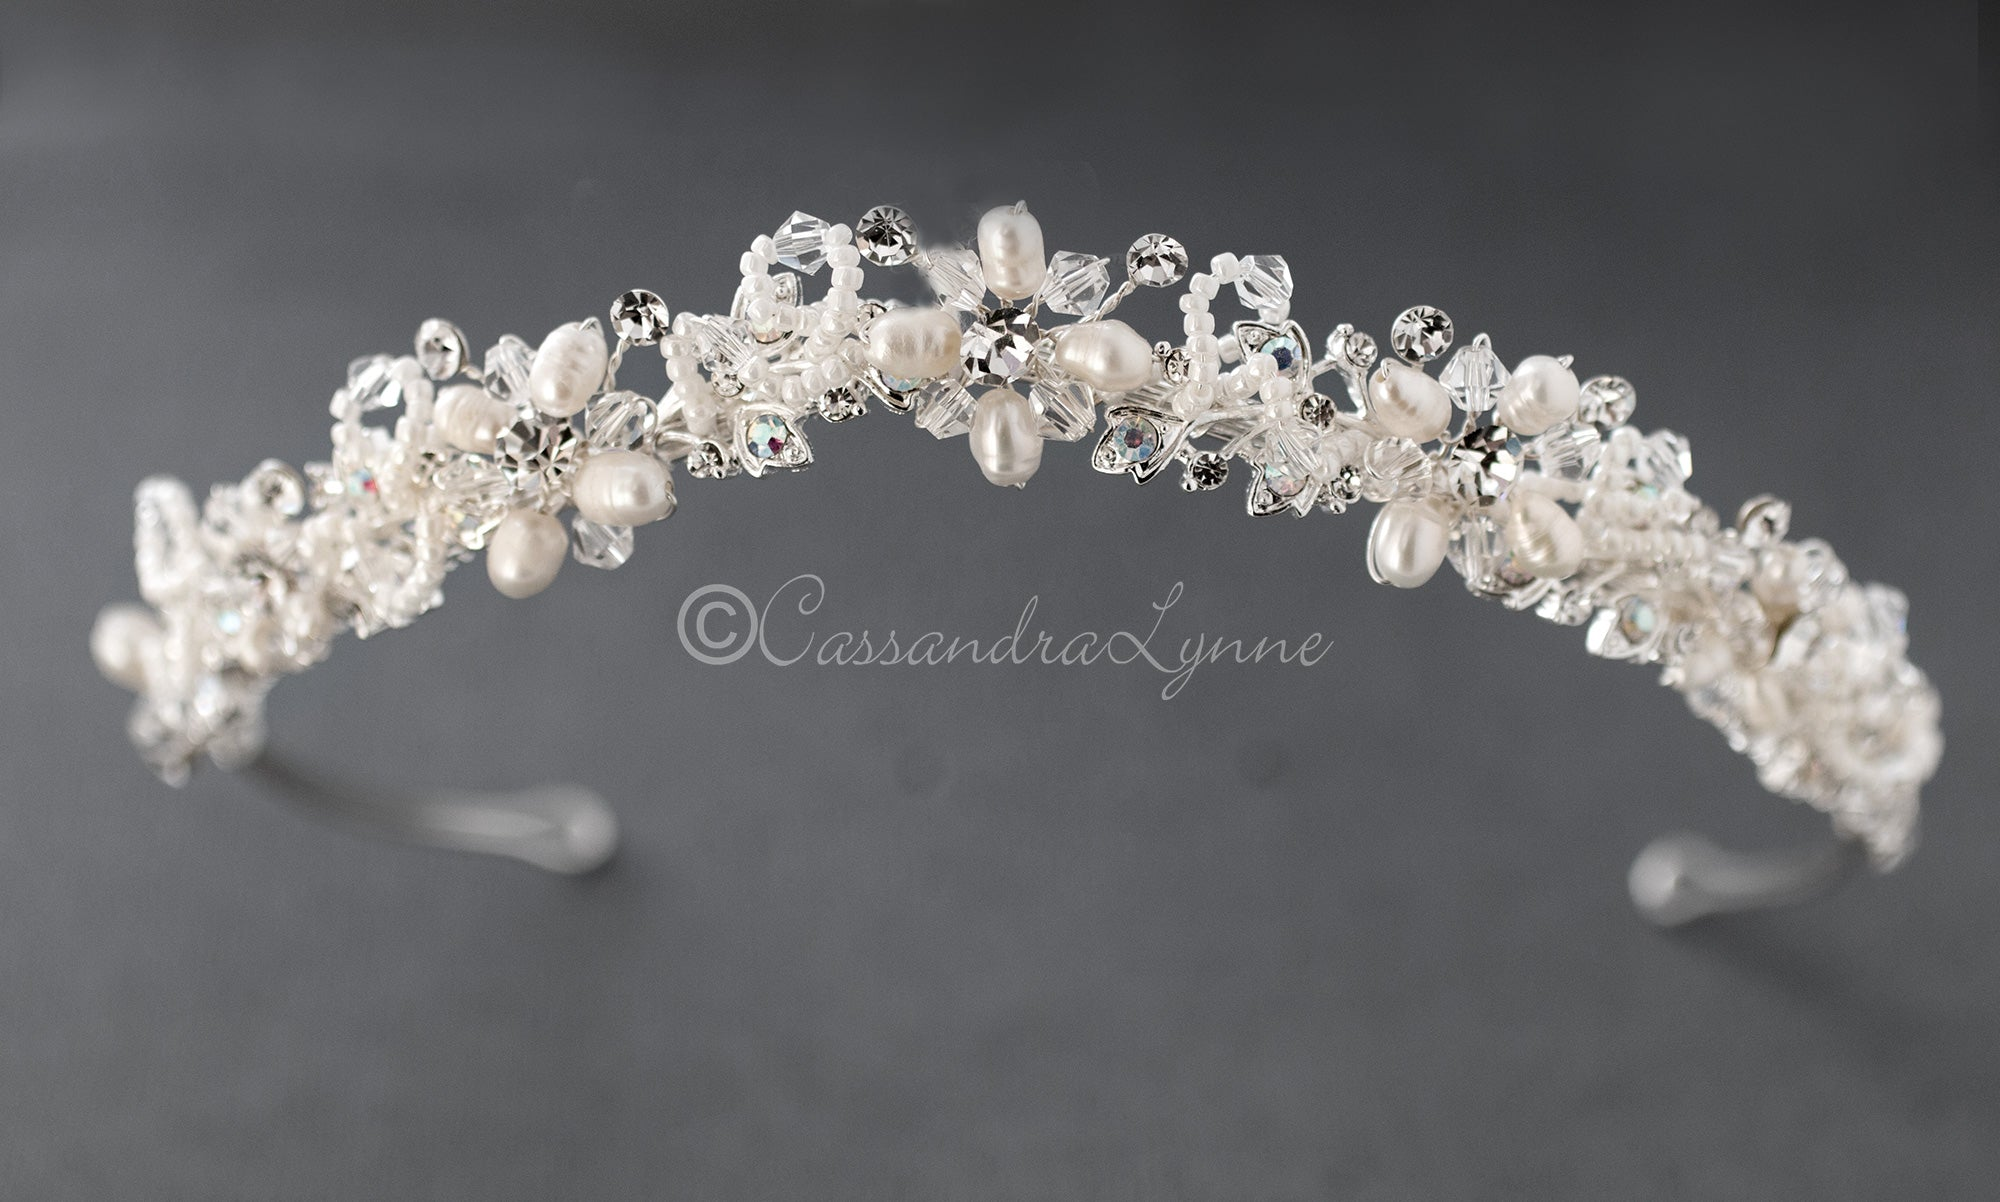 Bridal Tiara of Woven Beads and Crystals